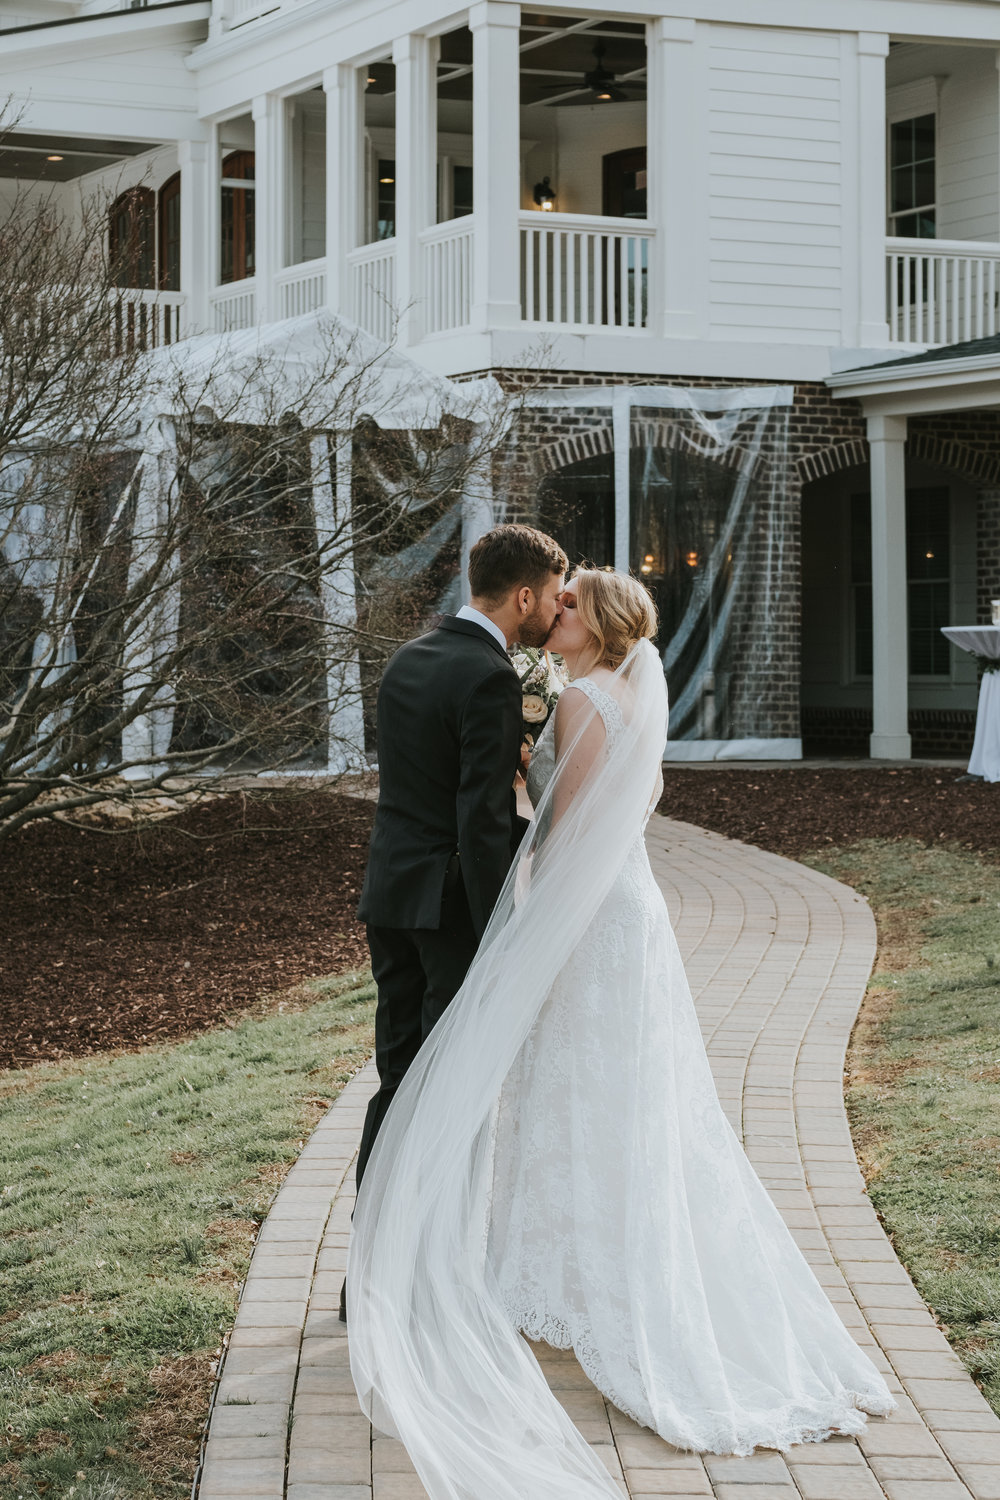 Are you recently engaged? Dream of the perfect wedding day, marriage, and love life? In this post, we are sharing the honest truth behind getting married, what they don't tell you, and what you should find beauty in during this time. Click through to read my journey of getting married, how I coped with anxiety, and found beauty amidst the chaos!